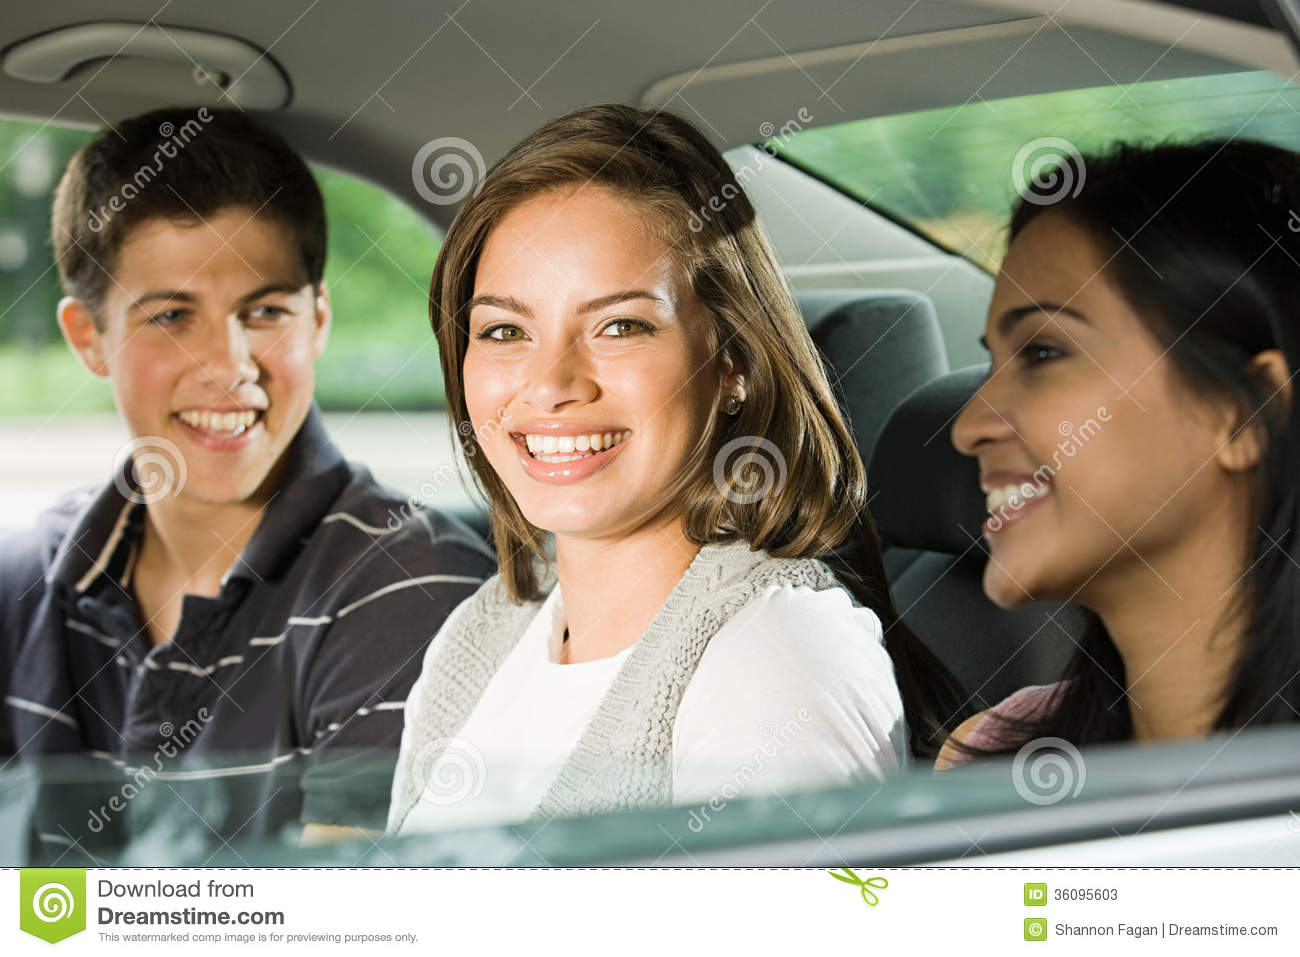 Three friends in the back of a car